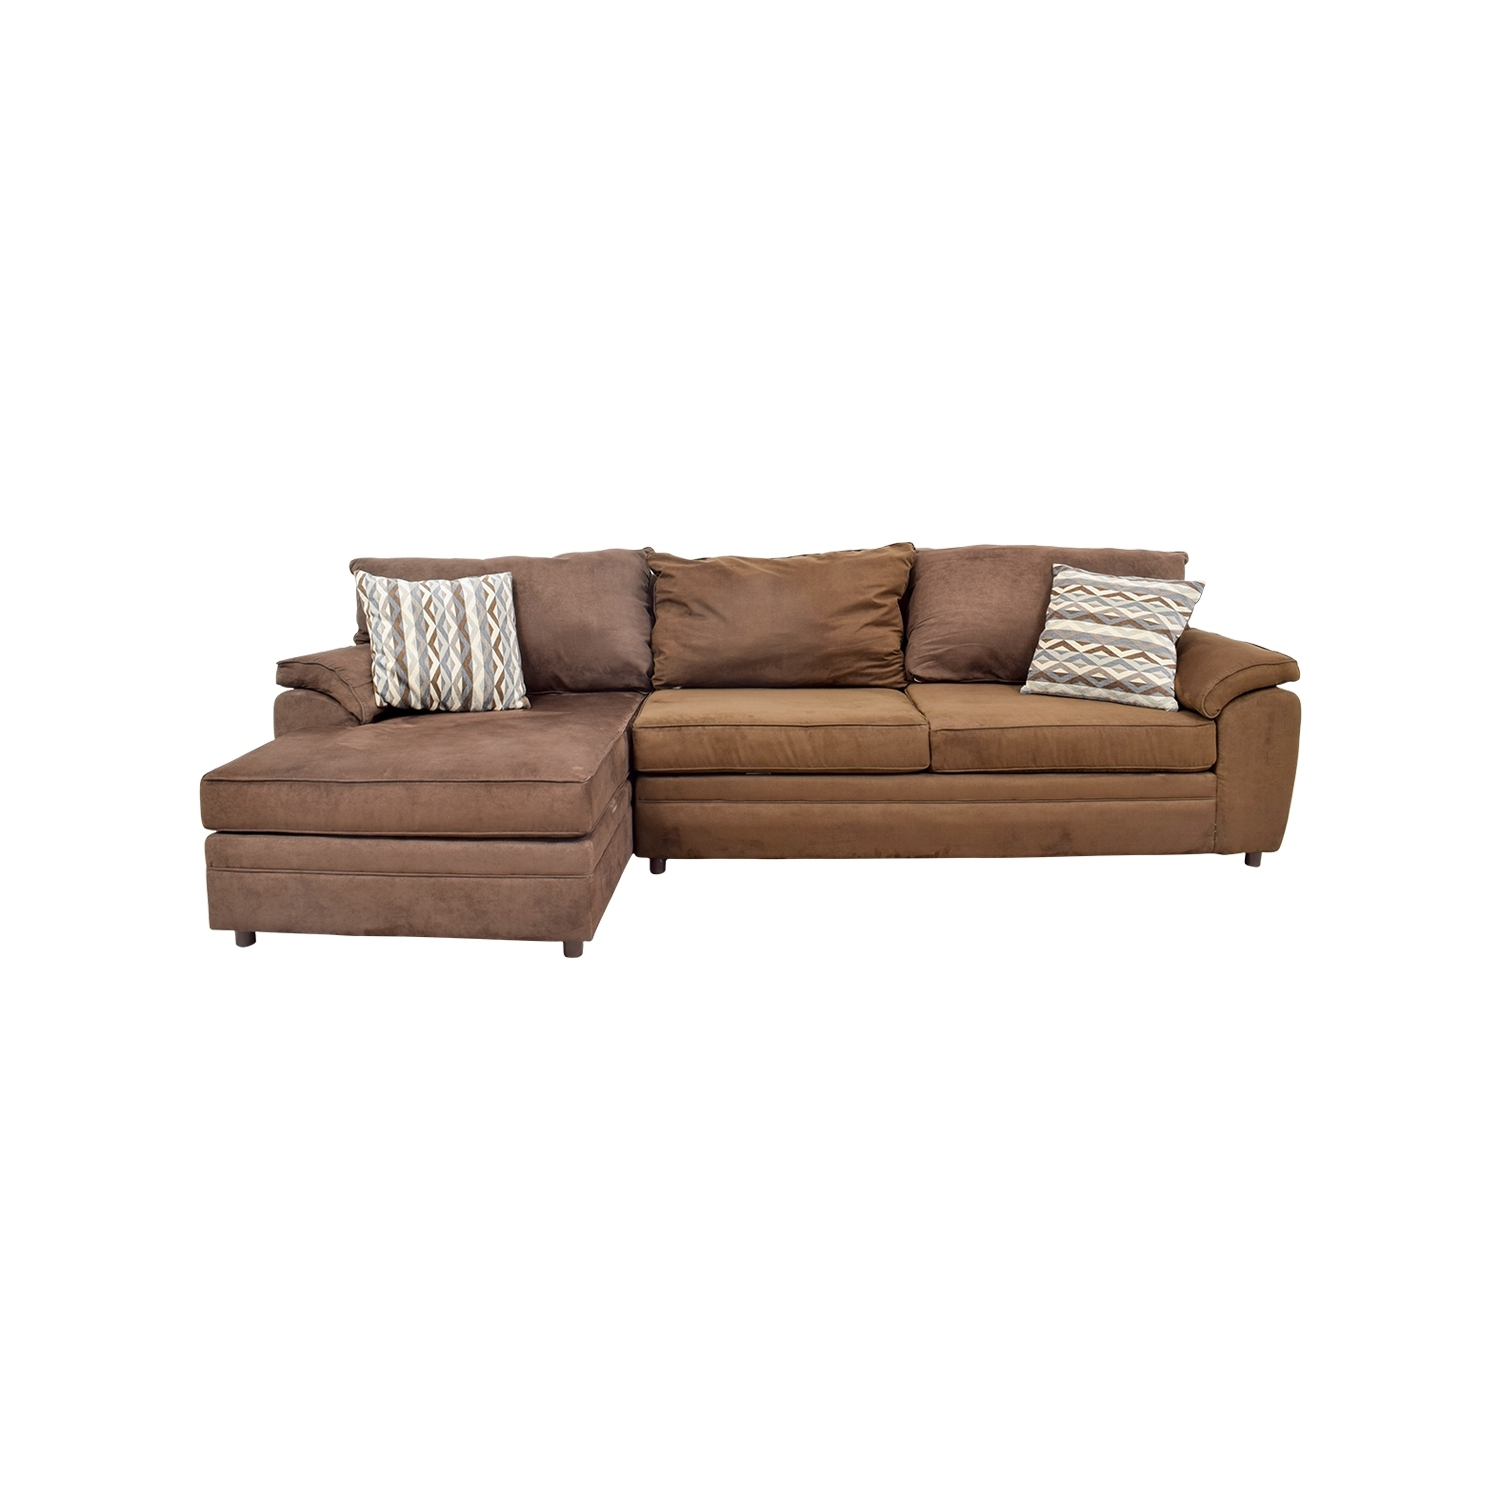 [%46% Off – Bob's Furniture Bob's Furniture Brown Chaise Sectional Intended For Famous Bobs Furniture Chaises|Bobs Furniture Chaises Intended For Recent 46% Off – Bob's Furniture Bob's Furniture Brown Chaise Sectional|Most Up To Date Bobs Furniture Chaises Inside 46% Off – Bob's Furniture Bob's Furniture Brown Chaise Sectional|Newest 46% Off – Bob's Furniture Bob's Furniture Brown Chaise Sectional With Regard To Bobs Furniture Chaises%] (View 13 of 15)